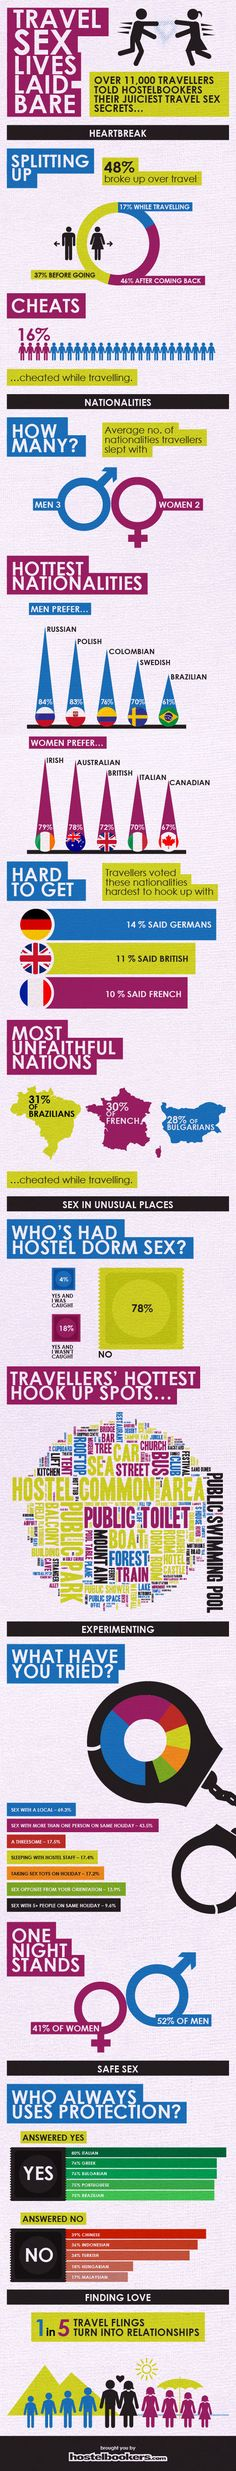 "Not-So Solo Travelers: A Brilliant Infographic on Backpacker ""Romance"" - The Borderless Project"